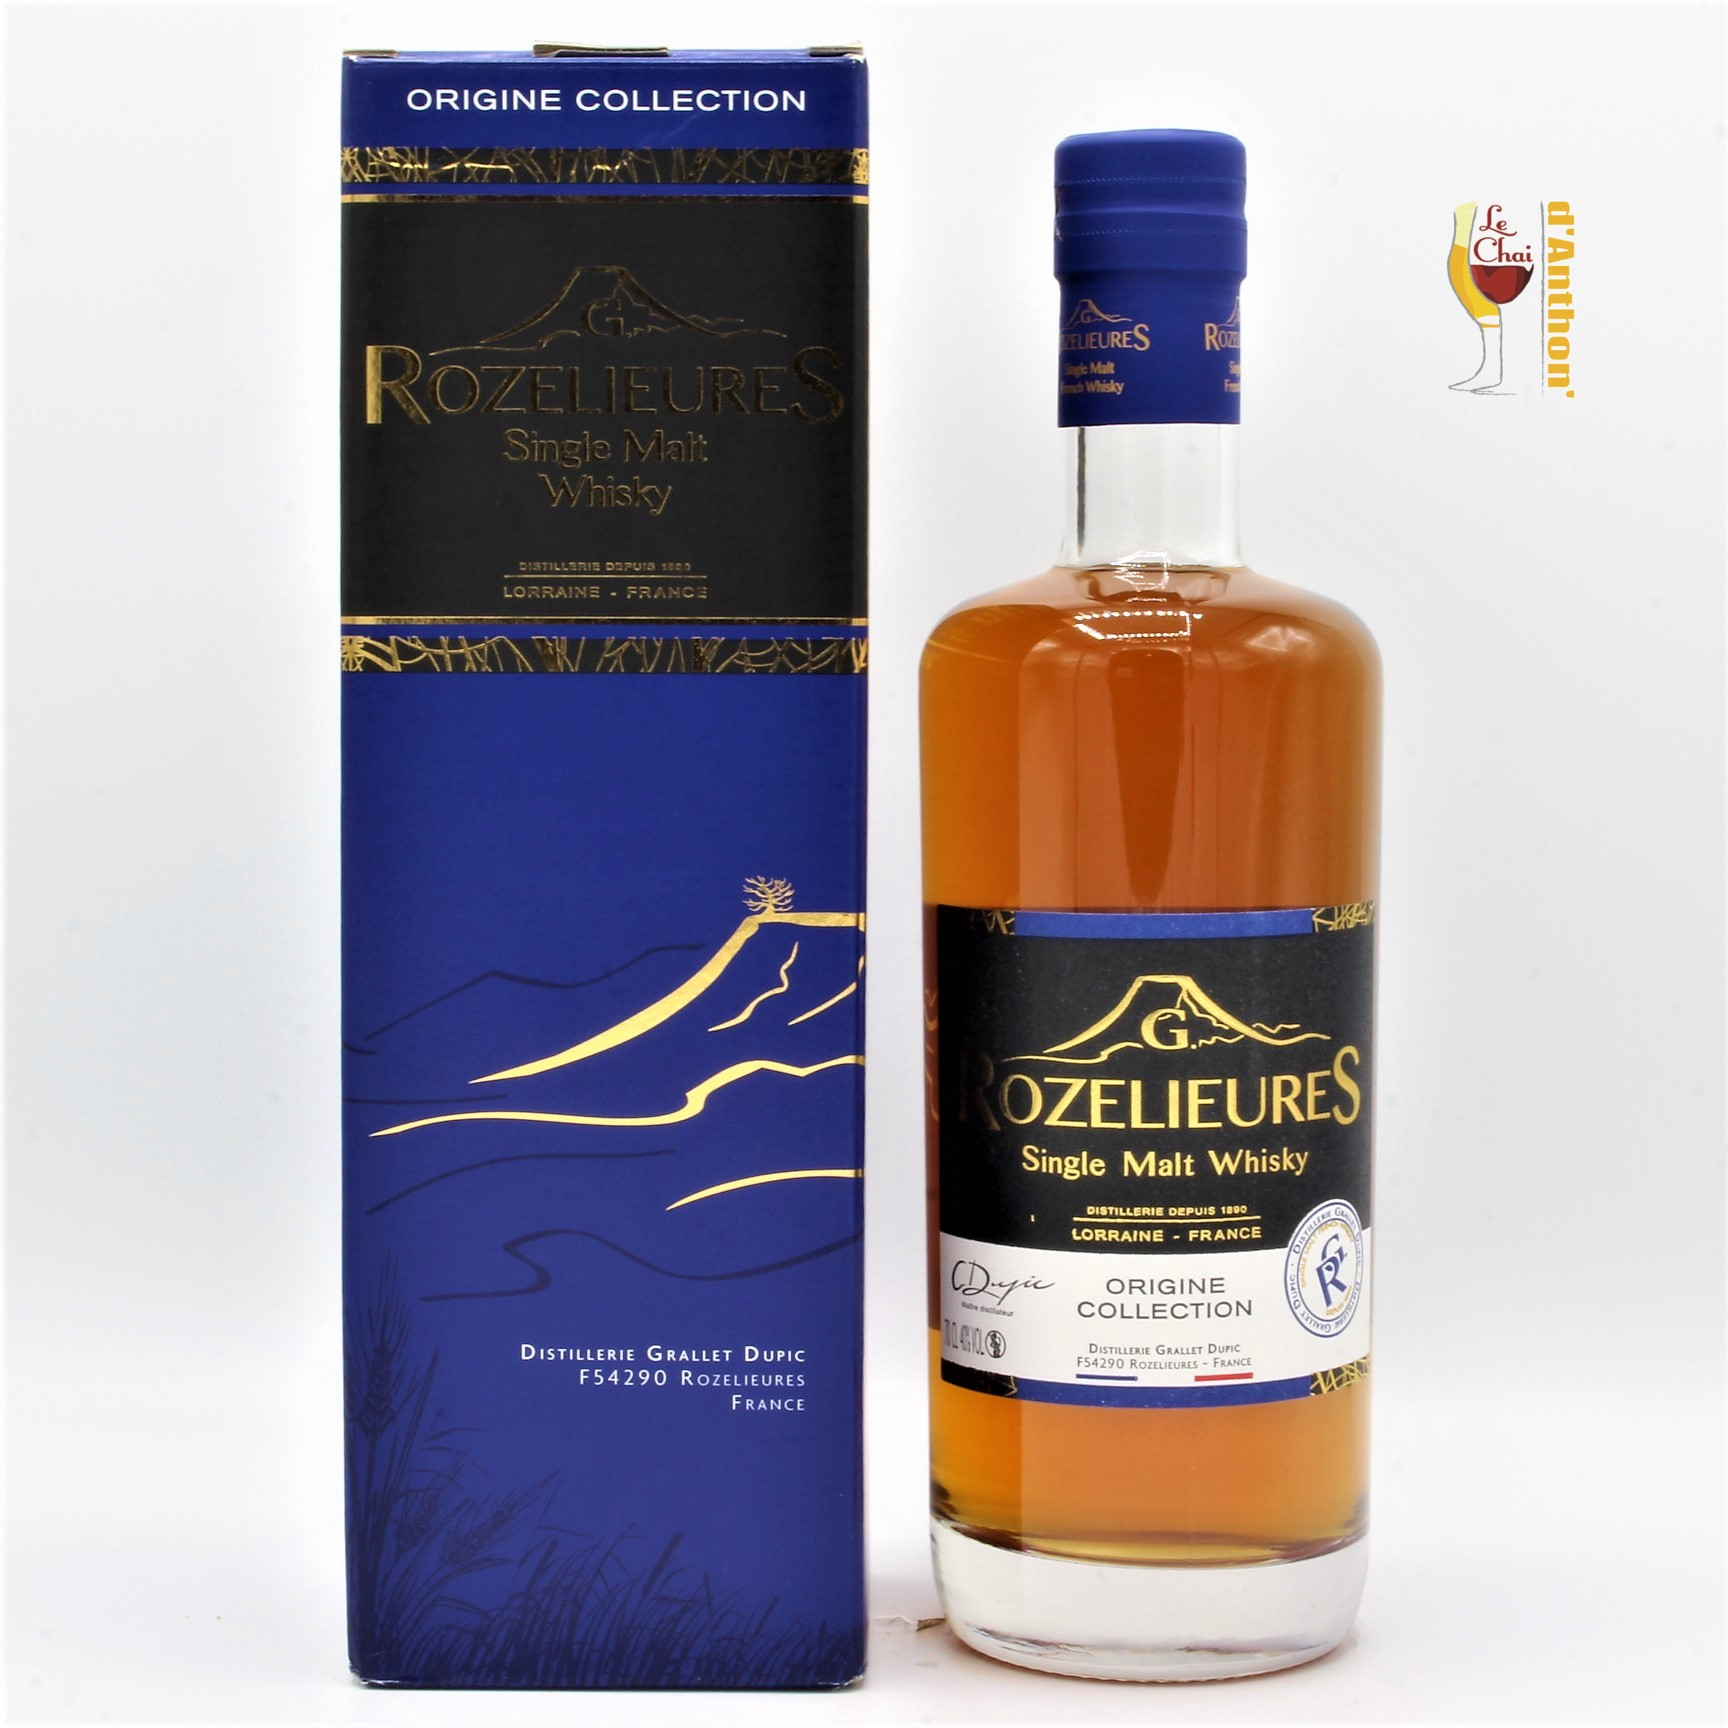 Le Chai D&905.JPG039;Anthon Spiritueux Whiskies Francais Single Malt Rozelieures Origine 70cl 905